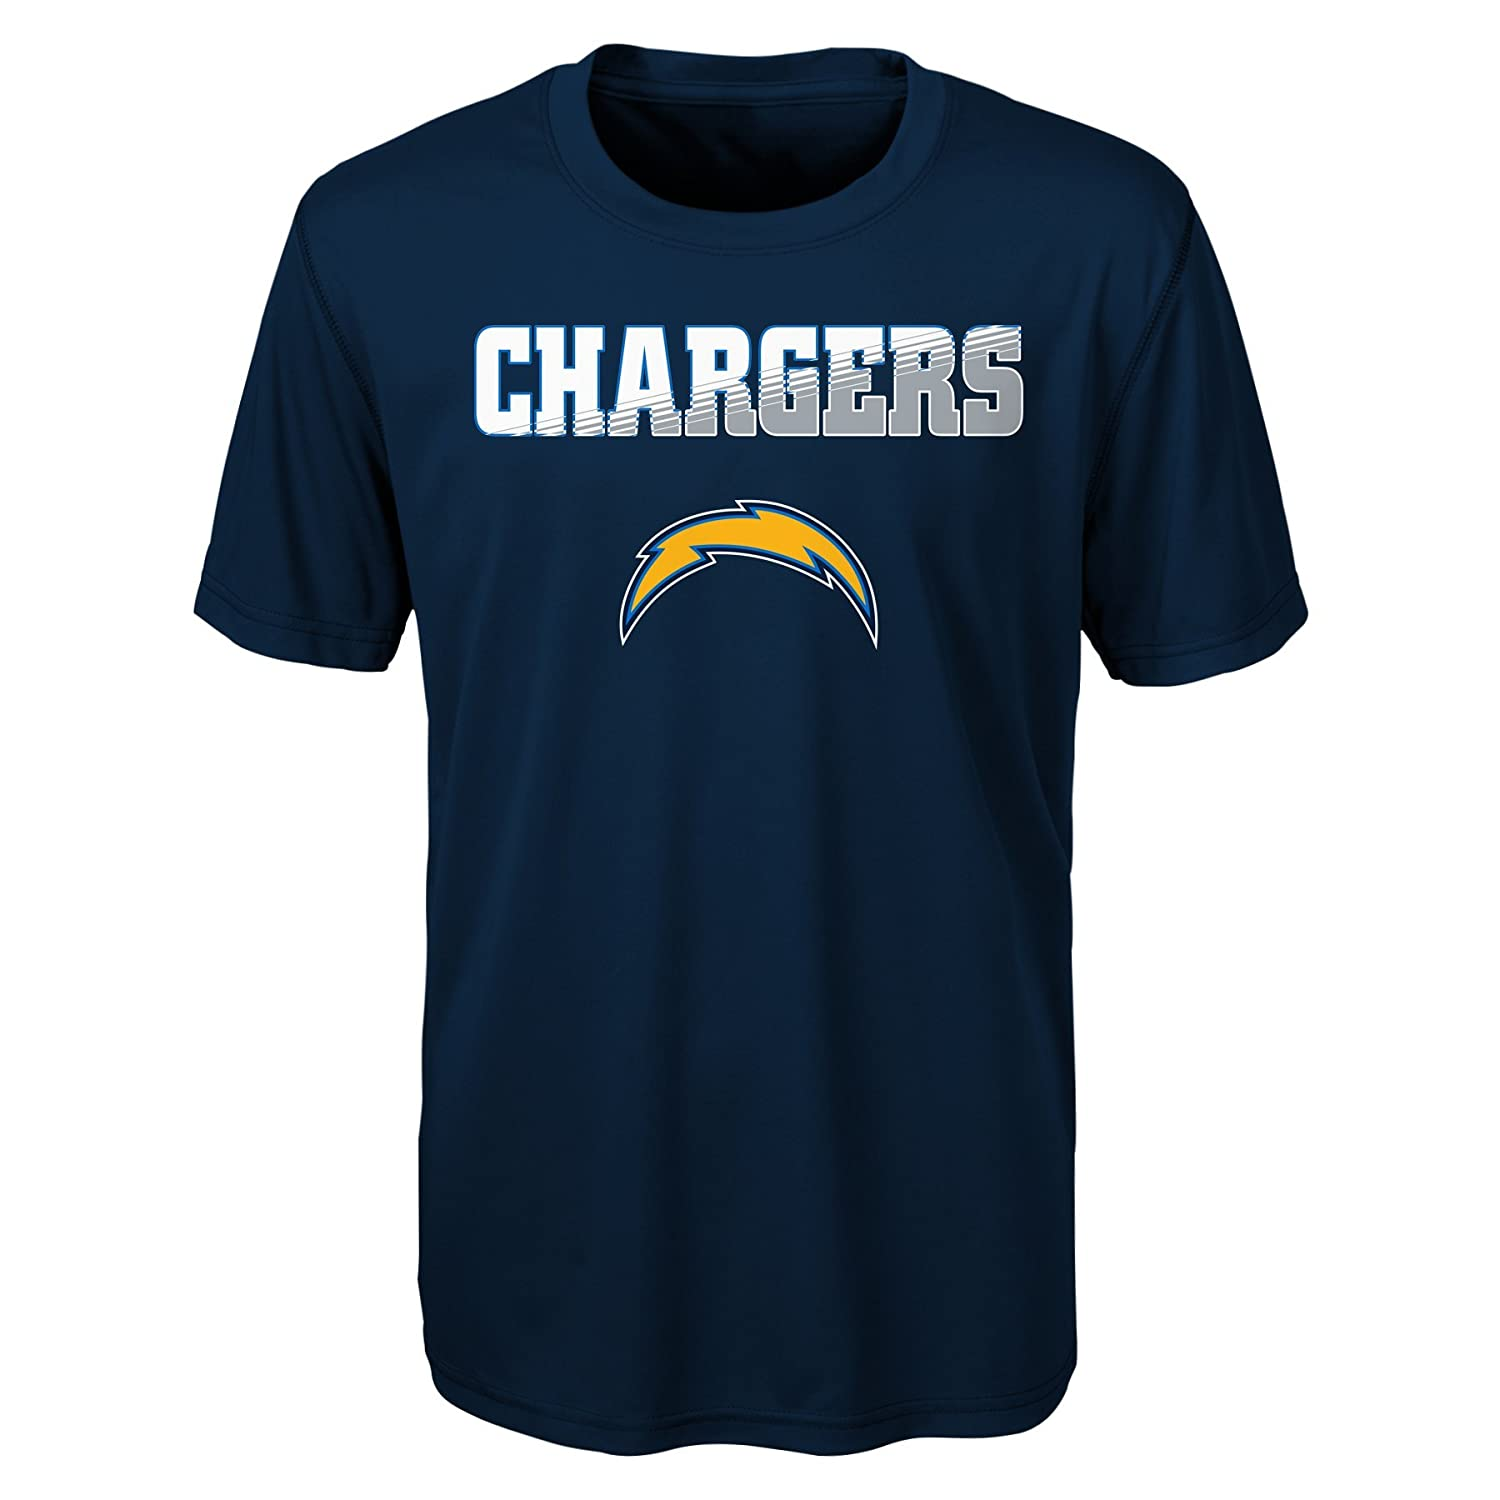 Outerstuff Boys NFL Youth Short Sleeve Performance Tee